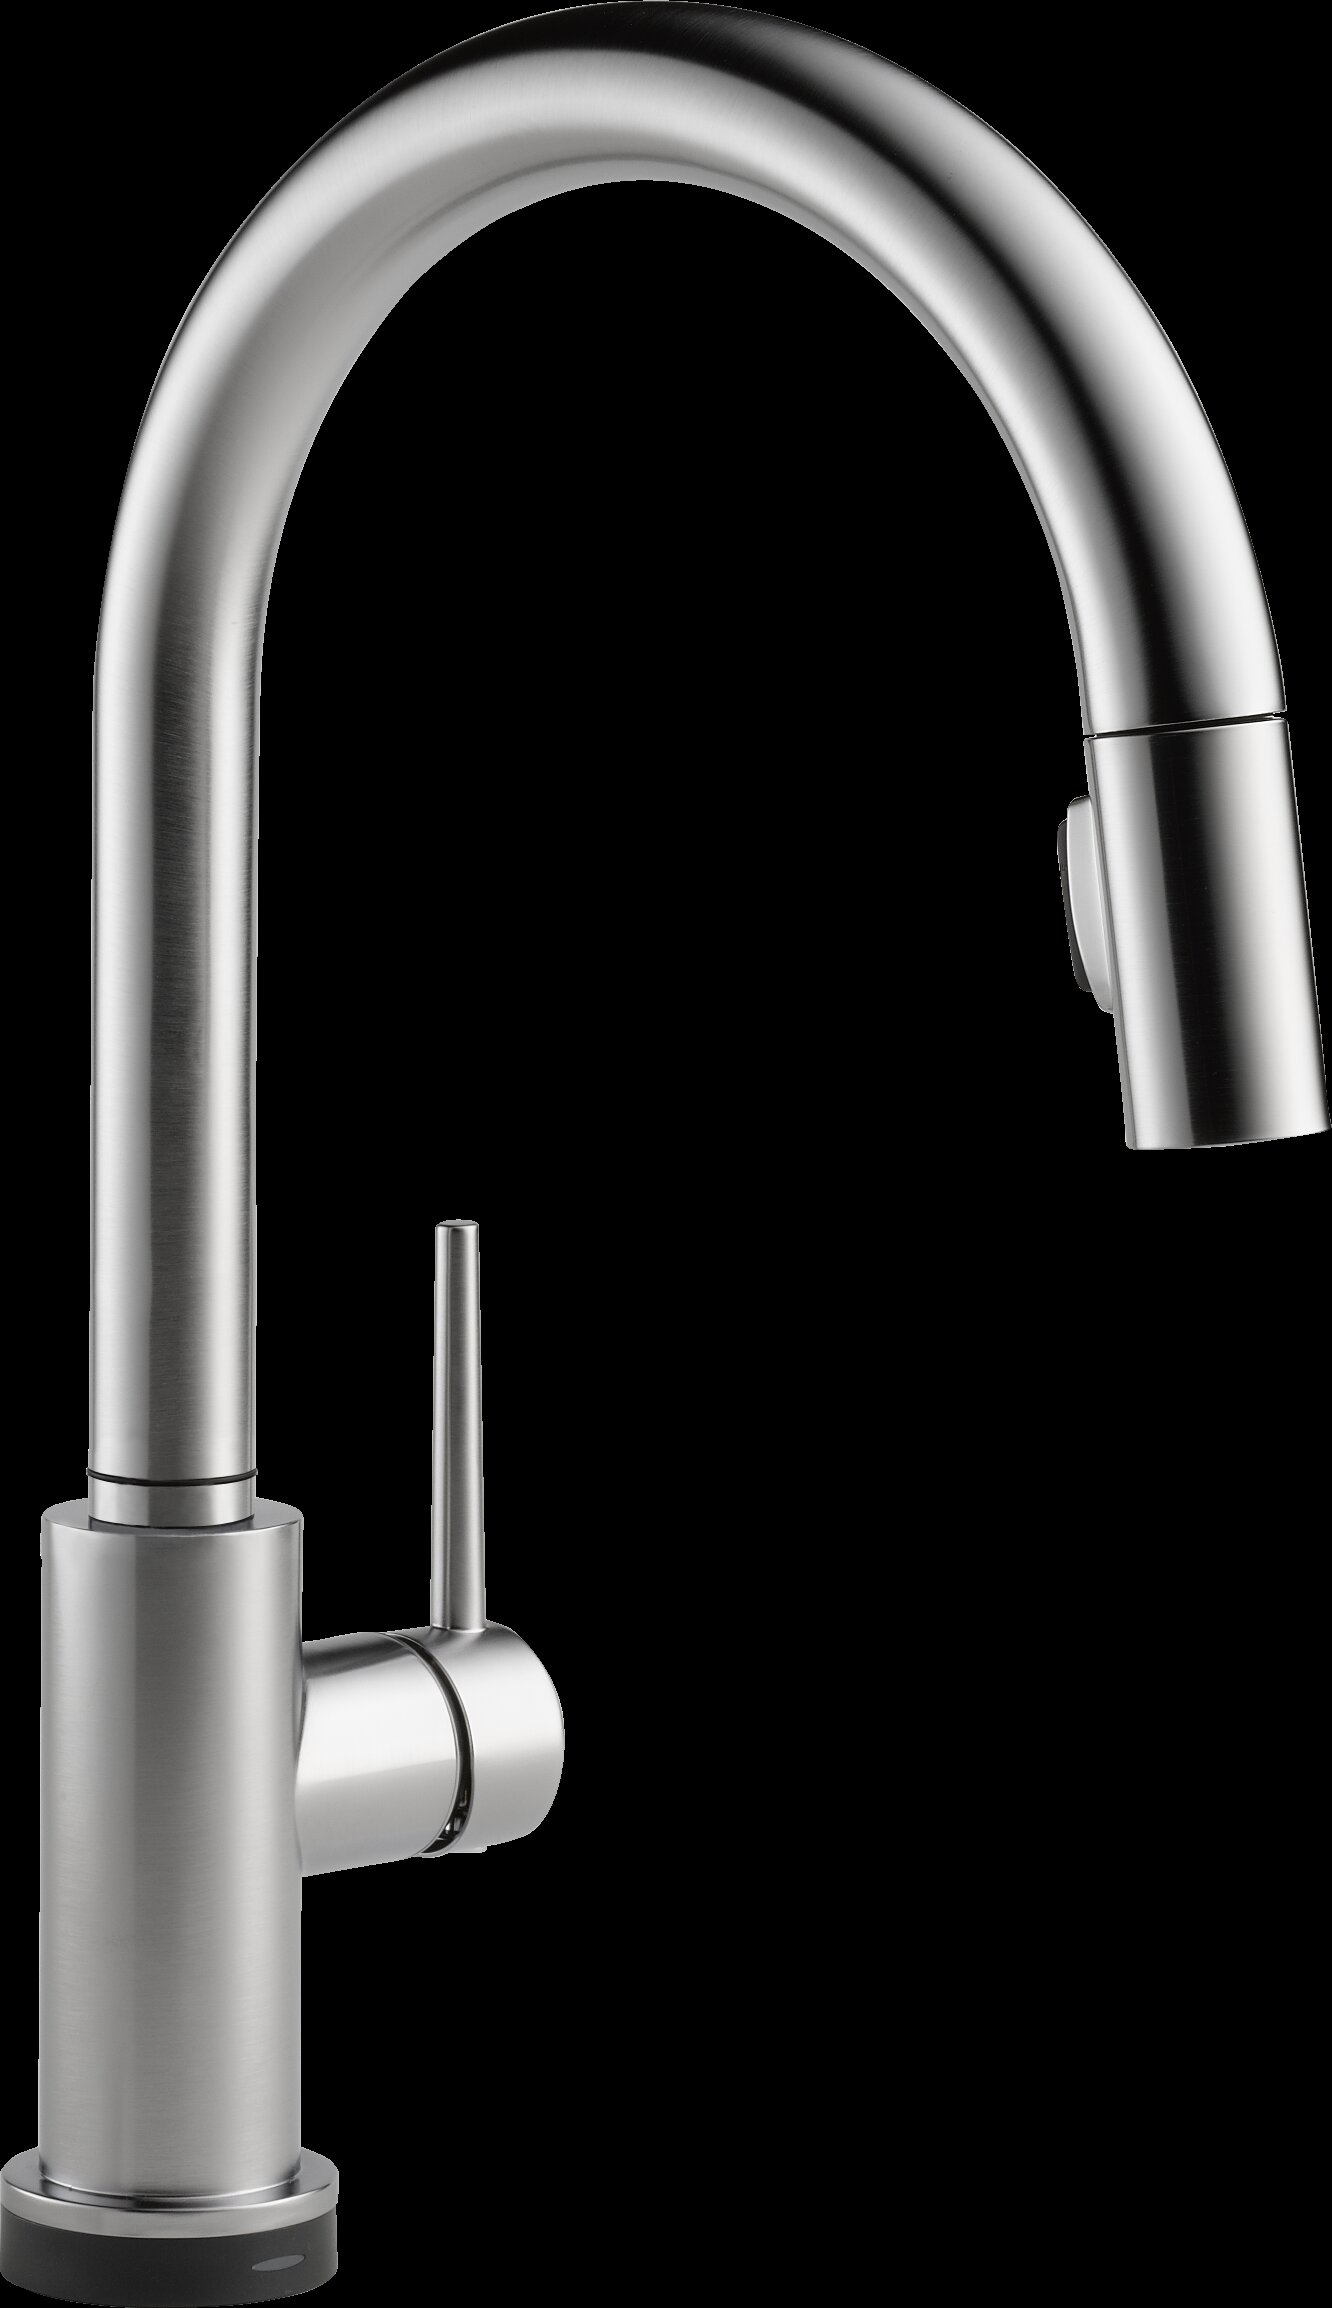 Delta Trinsic Pull Down Touch Single Handle Kitchen Faucet with ...